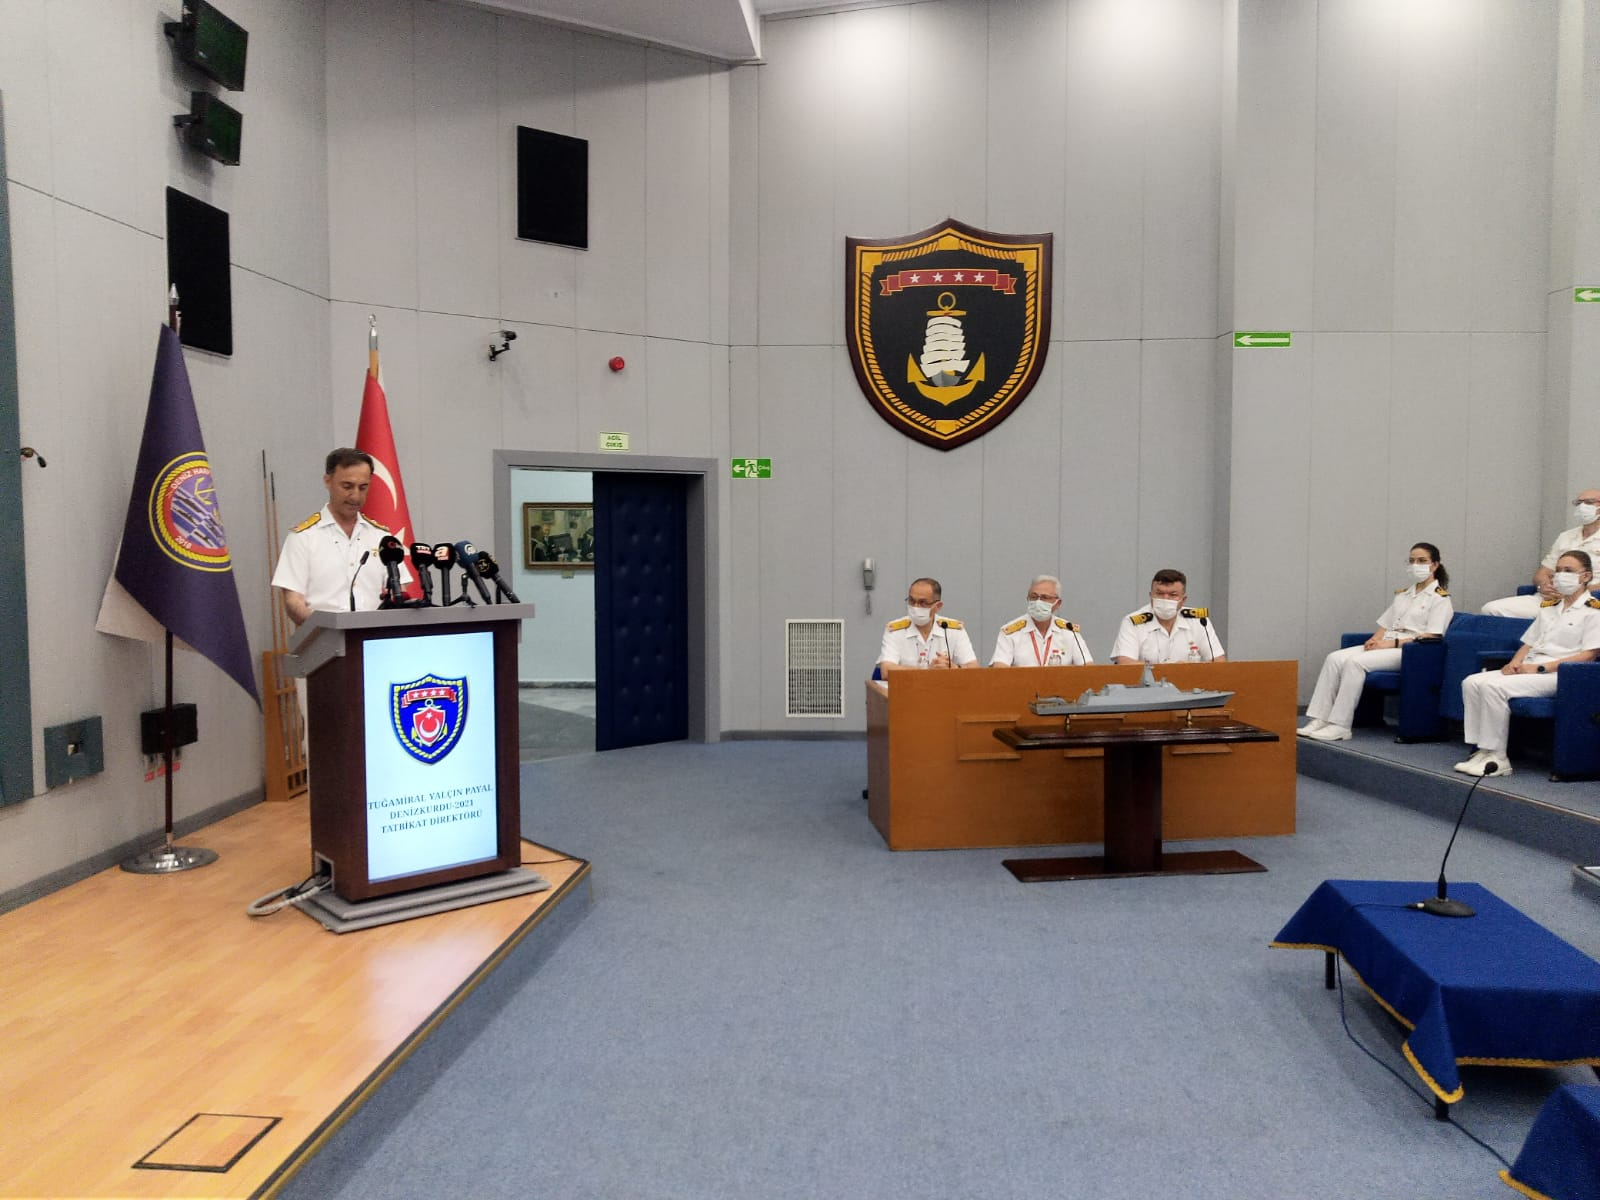 DENİZKURDU-2021 Exercise Kicks Off on May 25 with The Participation of Over 25 Thousand Personnel